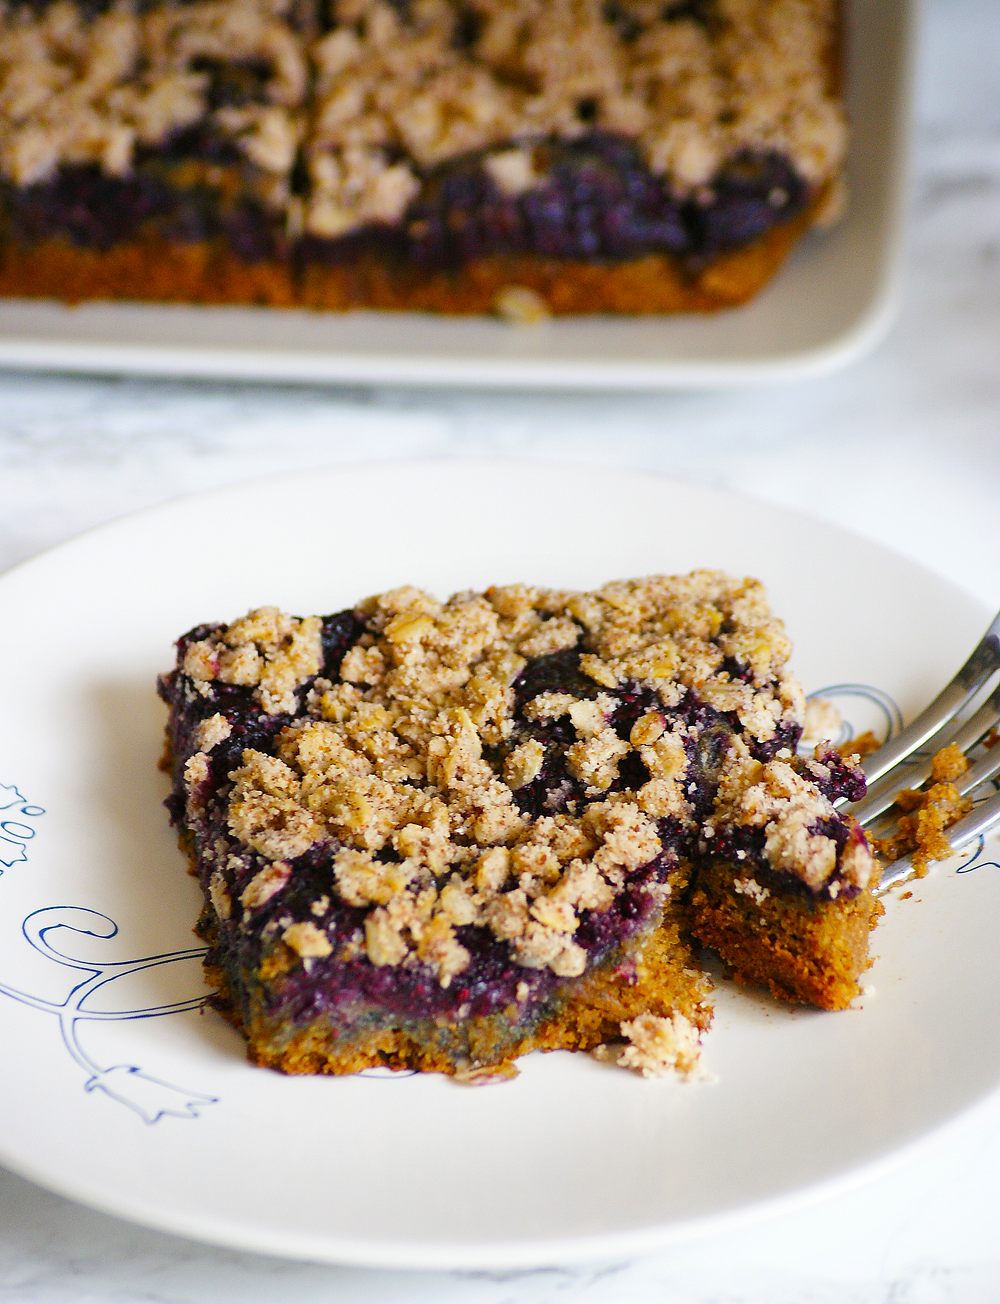 Sice of cinnamon coffee cake with blueberry jam